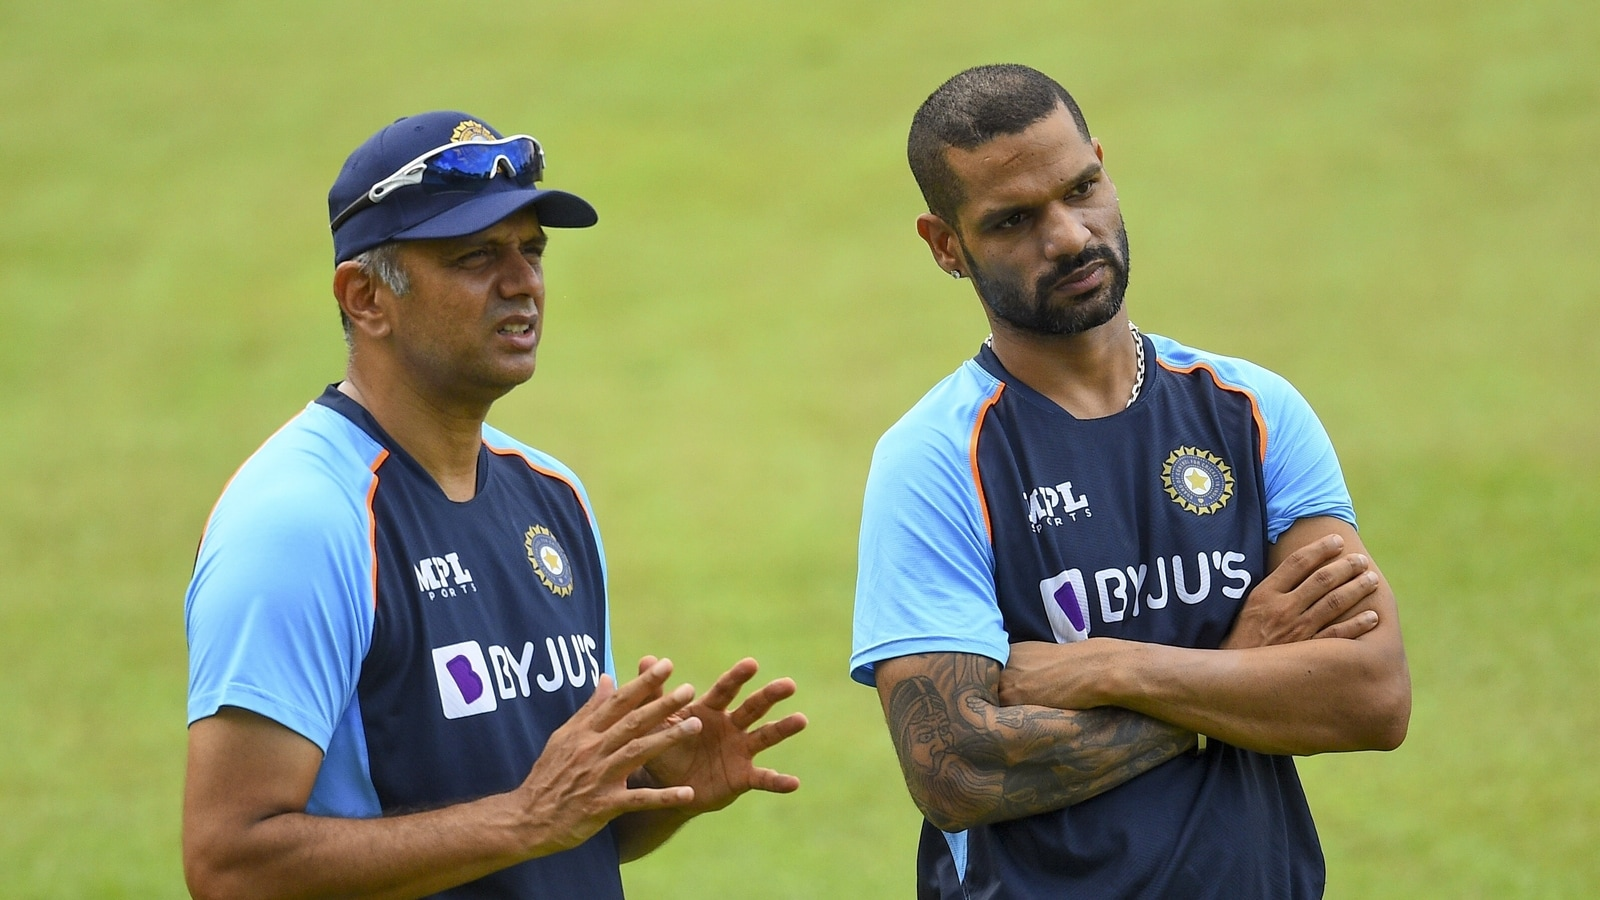 Twitter goes crazy after coach Rahul Dravid leads India's first training  session in Sri Lanka | Cricket - Hindustan Times